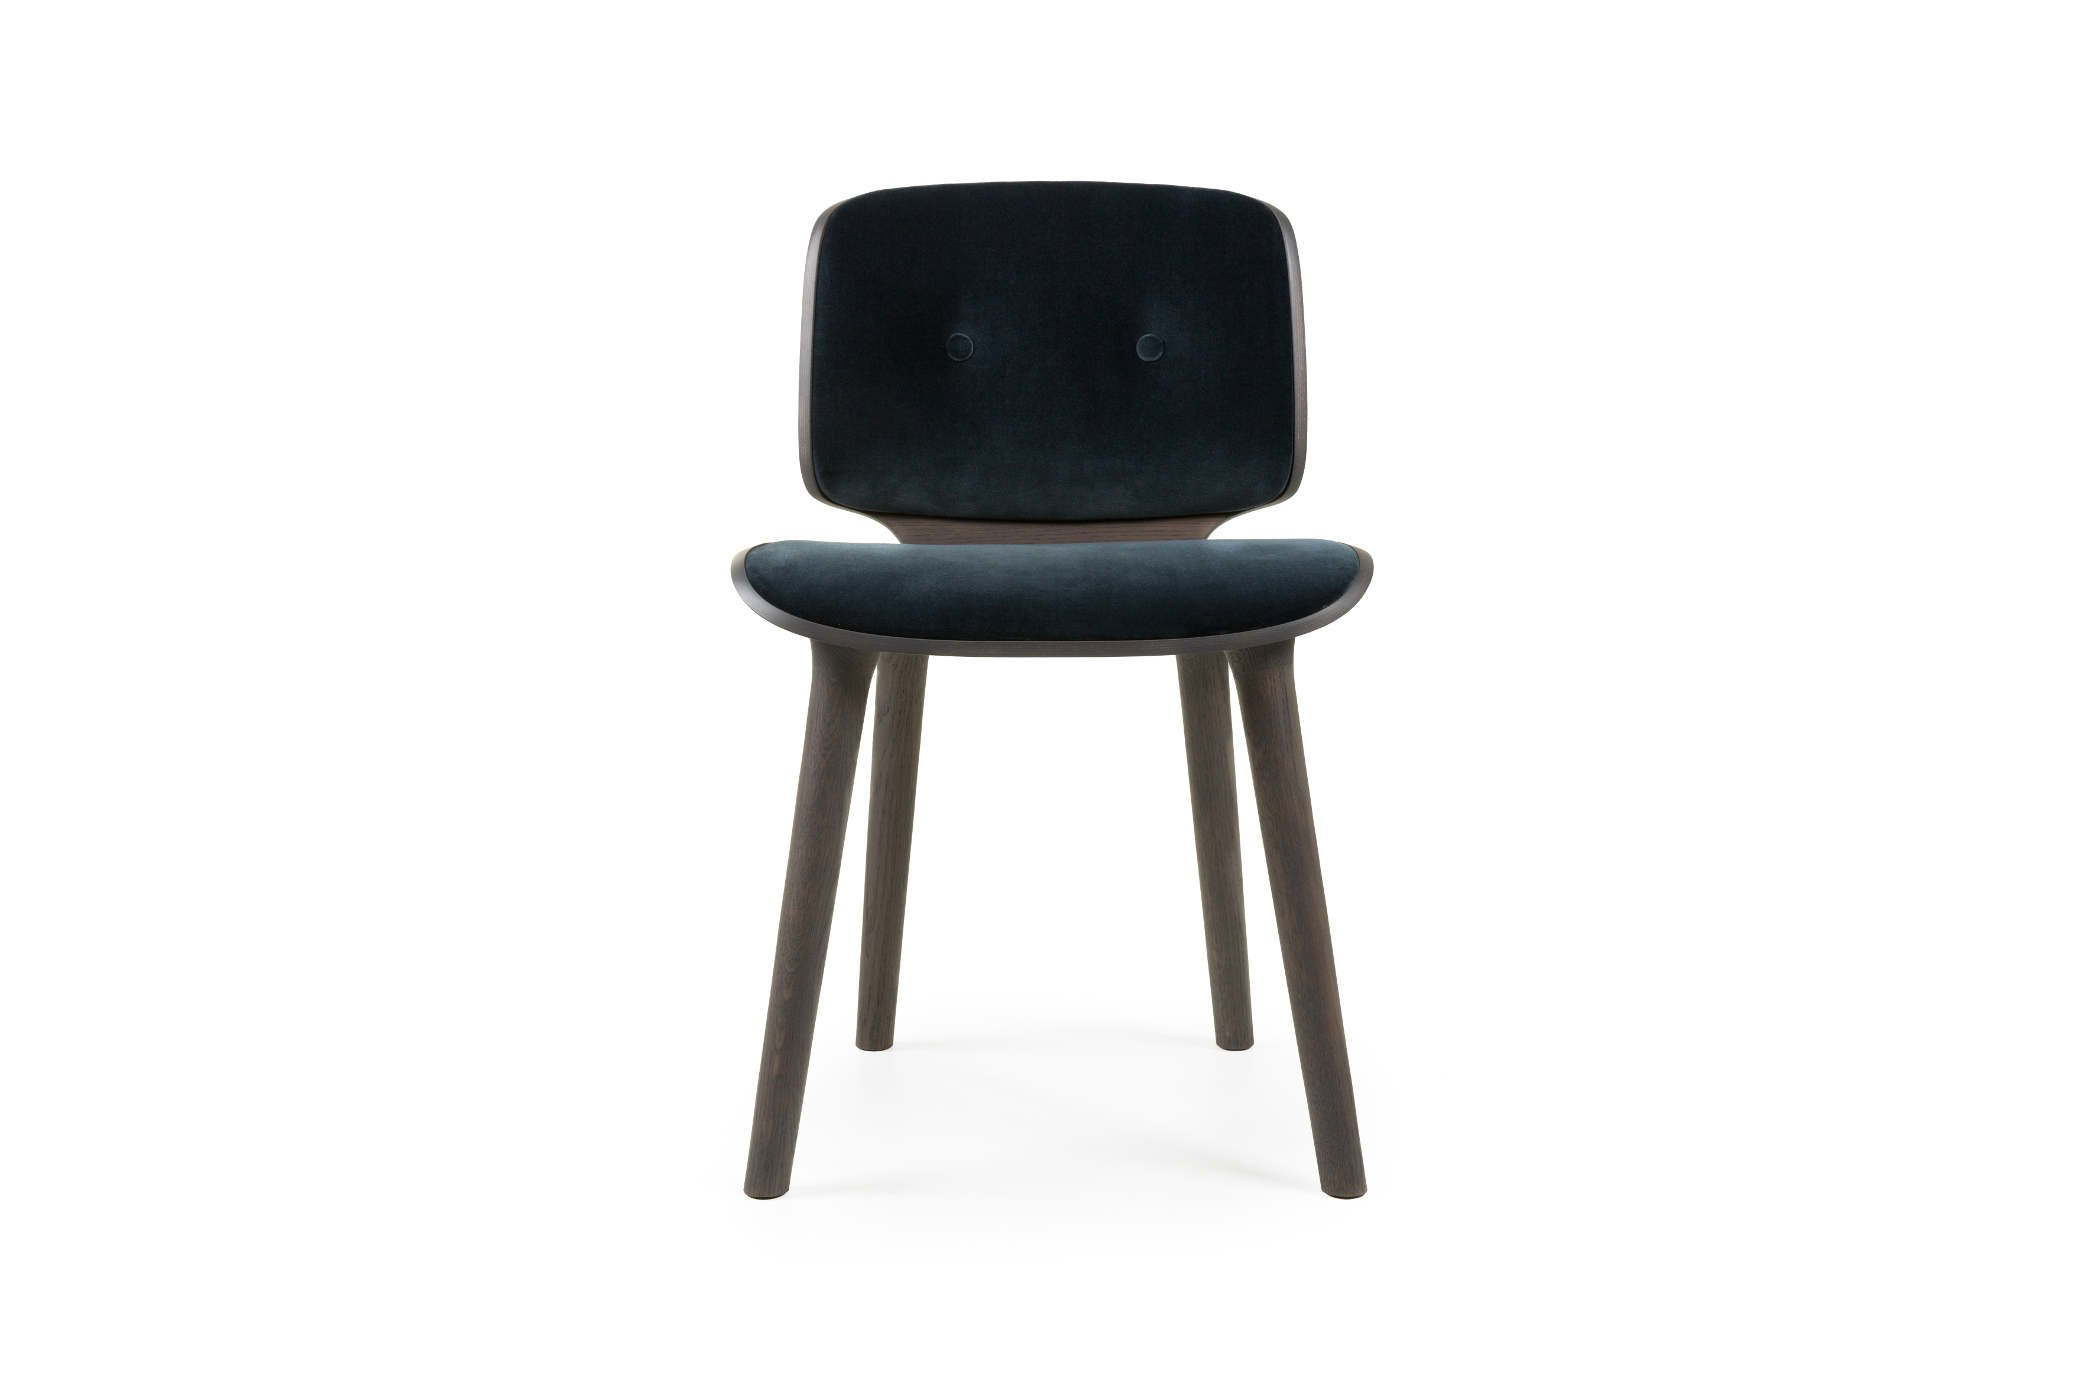 Design Stoelen Moooi.Moooi Nut Chair De Projectinrichter